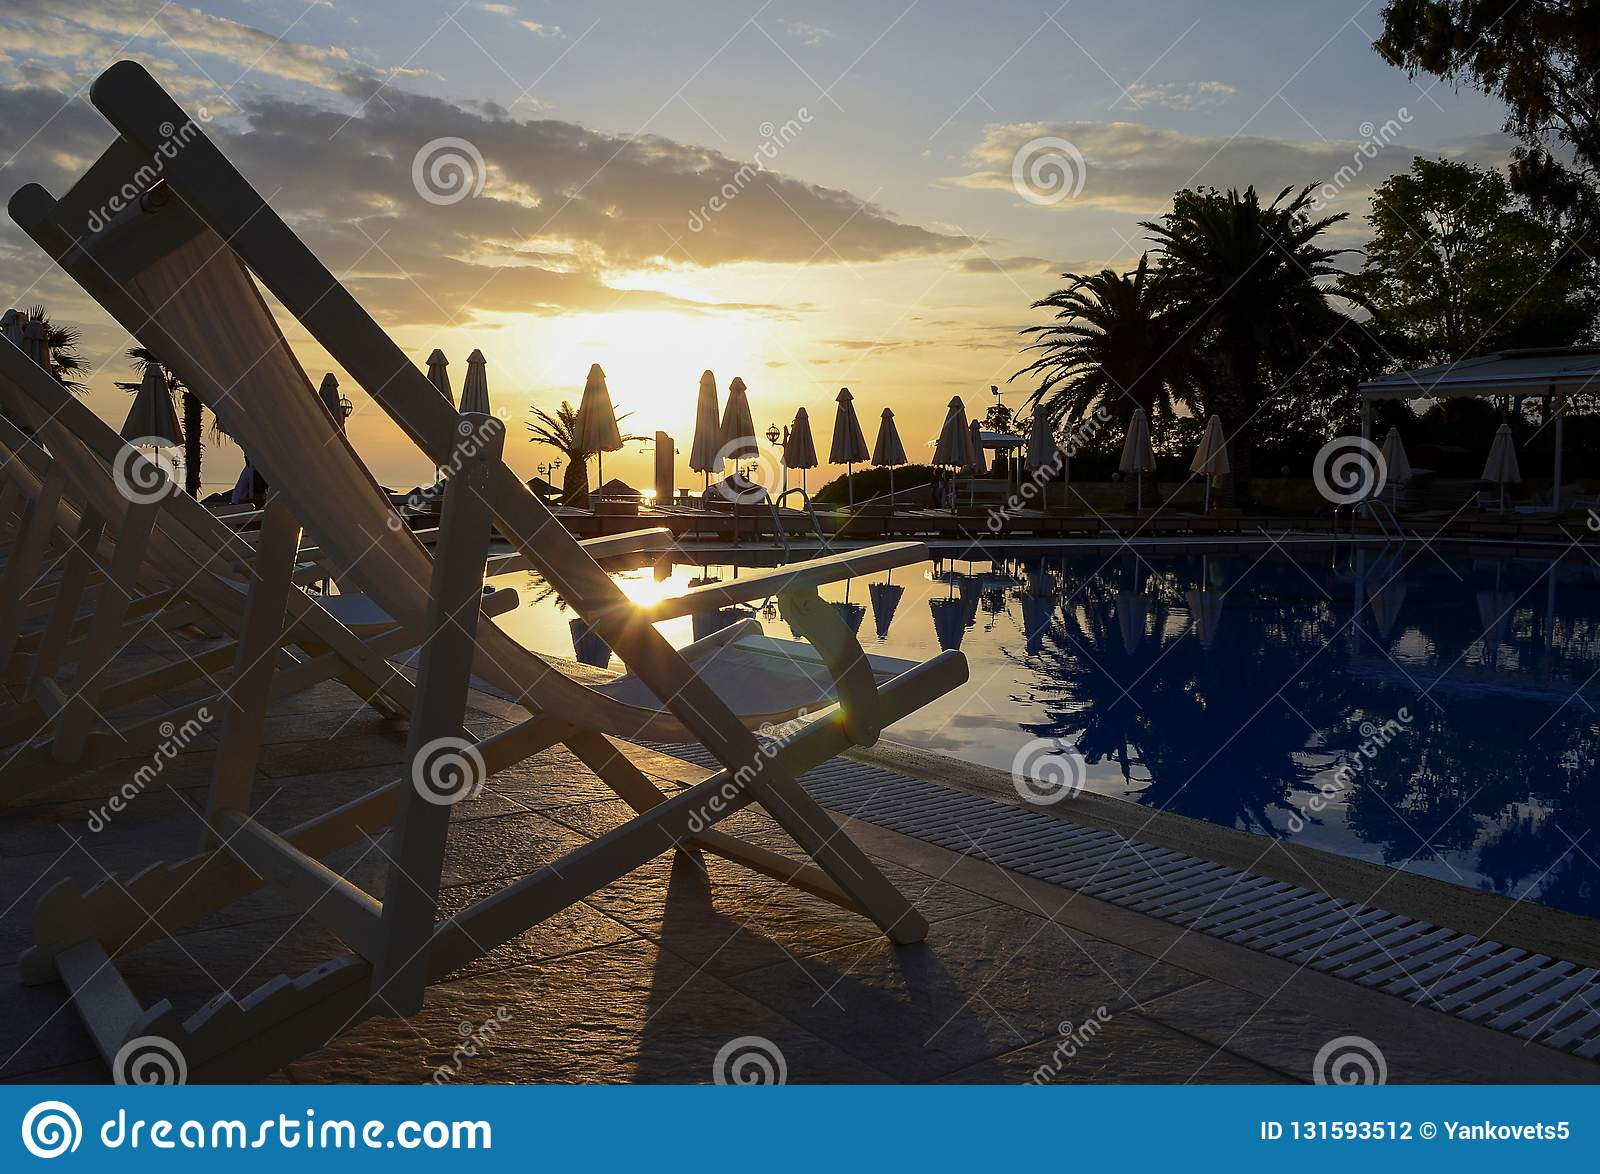 Many white chaise longues stand near the swimming pool against the backdrop of a dawn sky and beach umbrellas